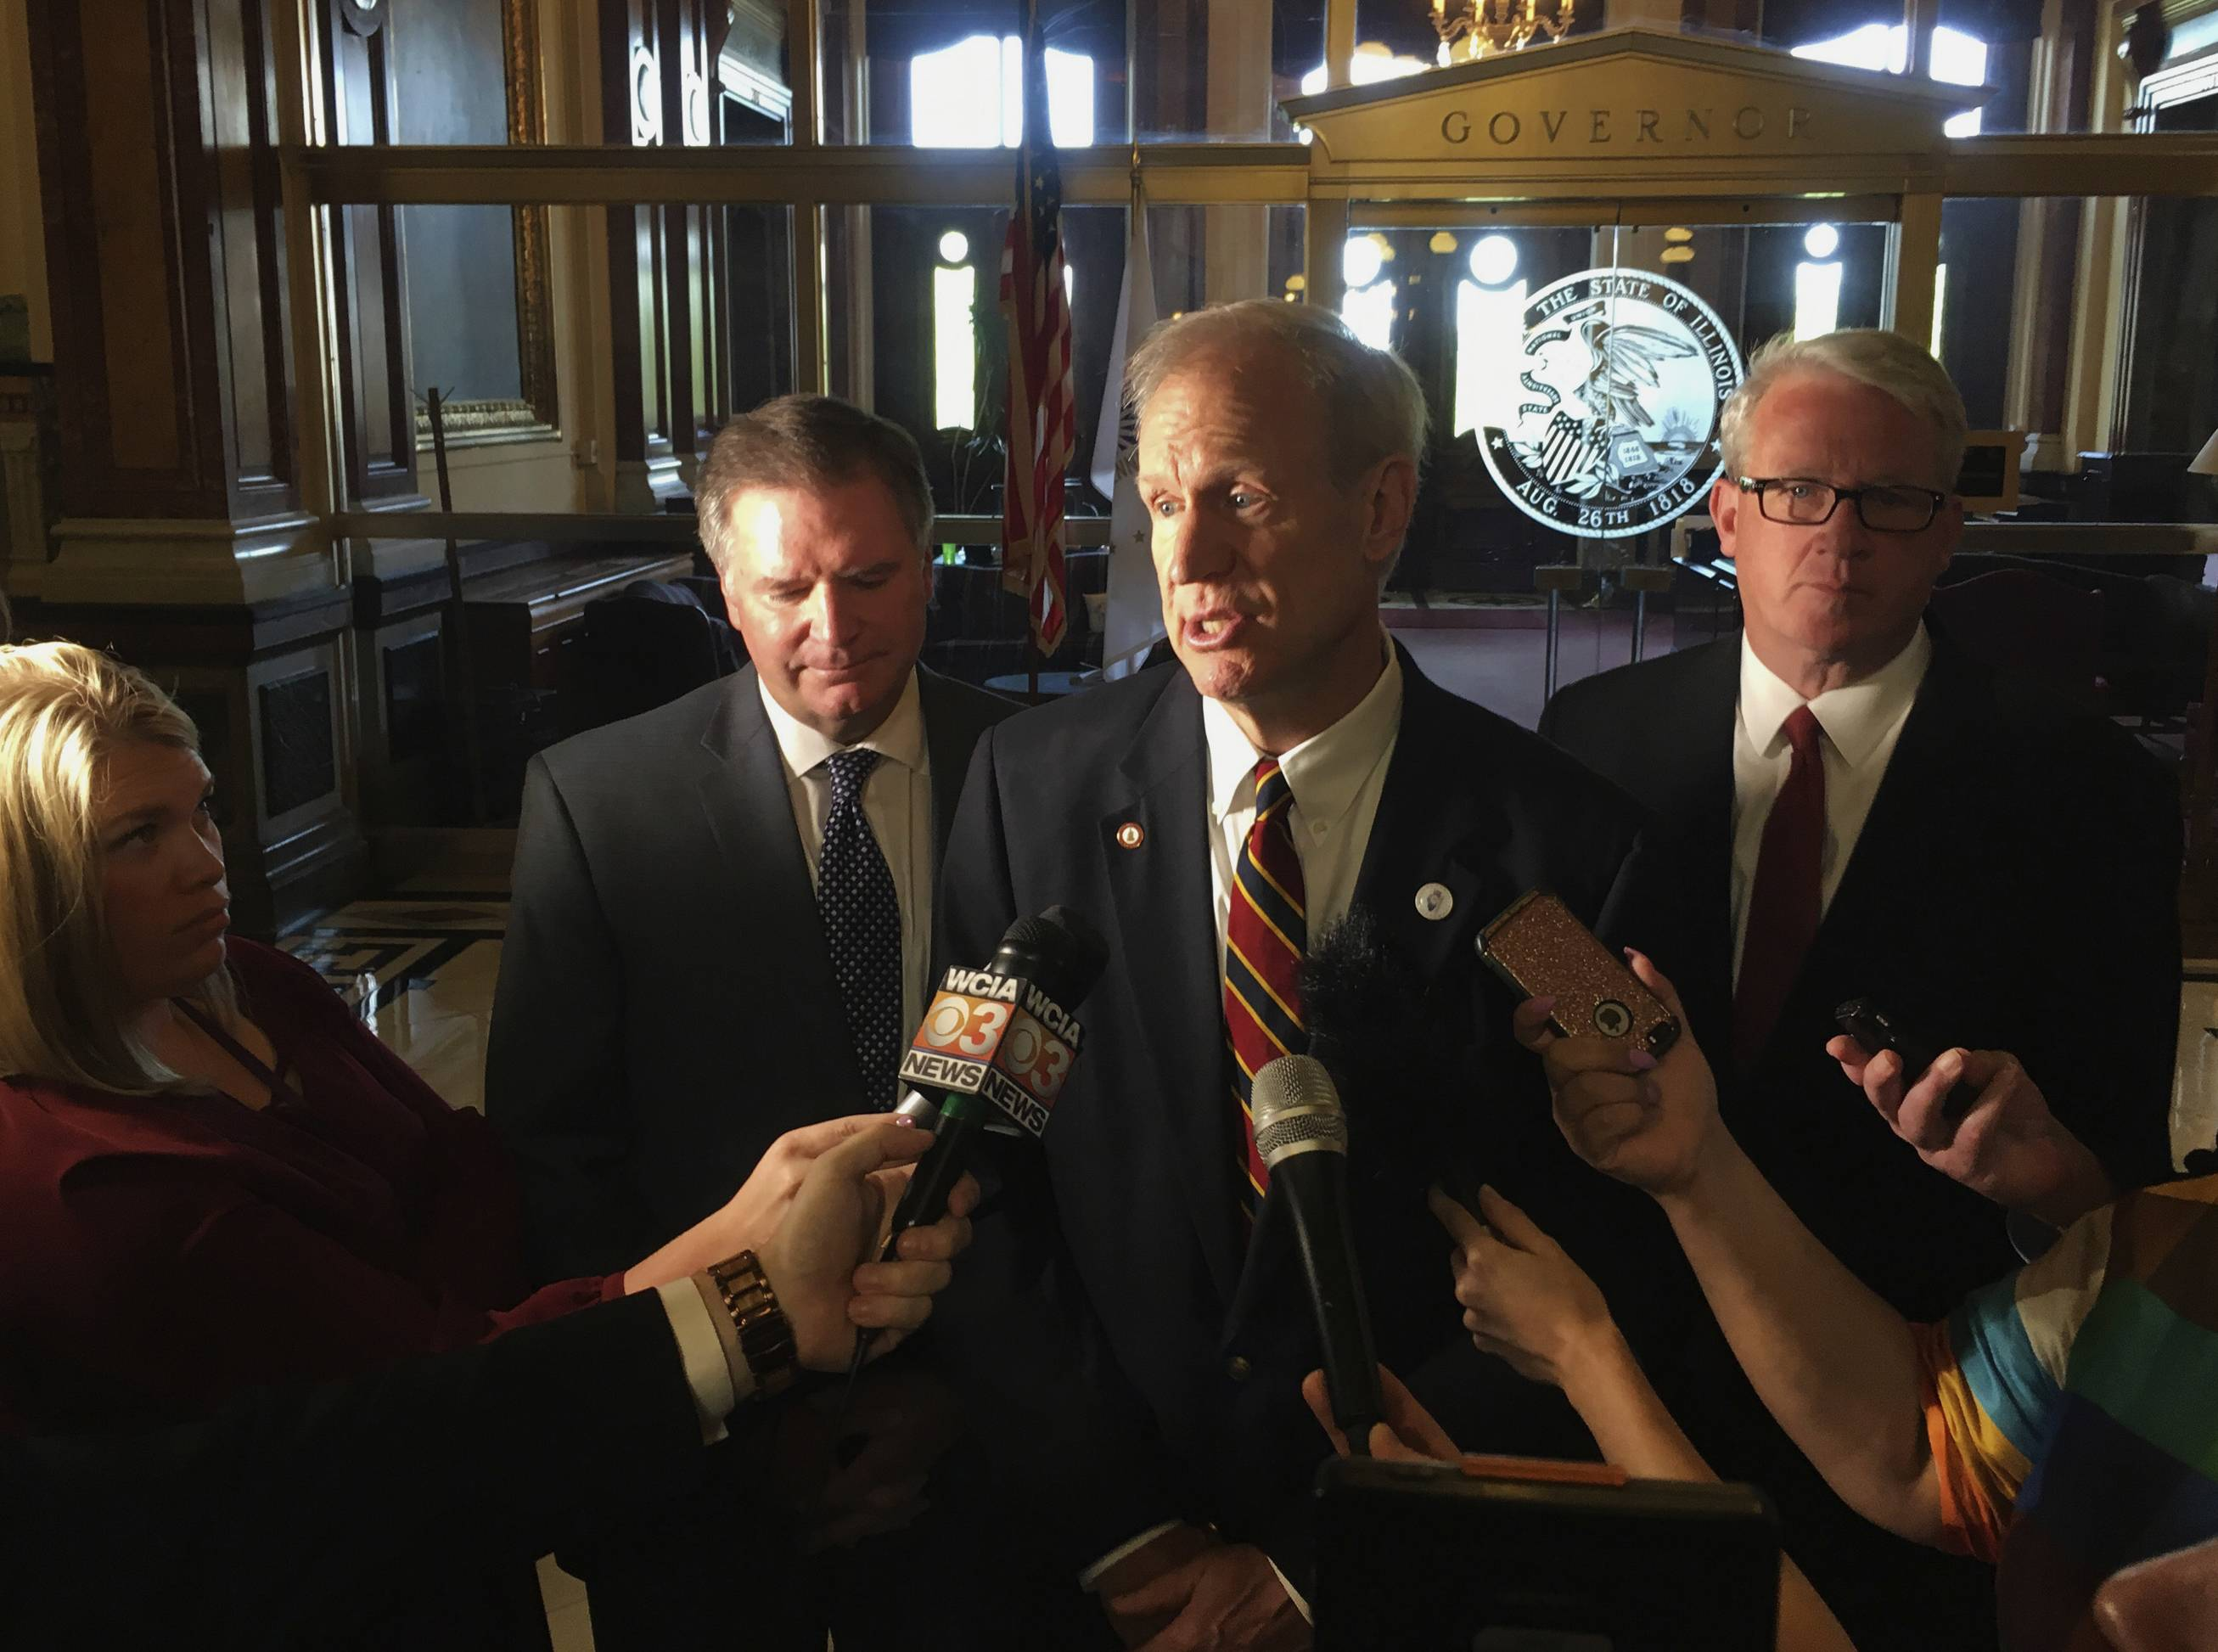 Gov. Bruce Rauner, center, wants to reinstate the death penalty in the state. He added the provision Monday into gun legislation favored by Democrats. The bill now goes back to the Democratic-controlled Legislature for approval.